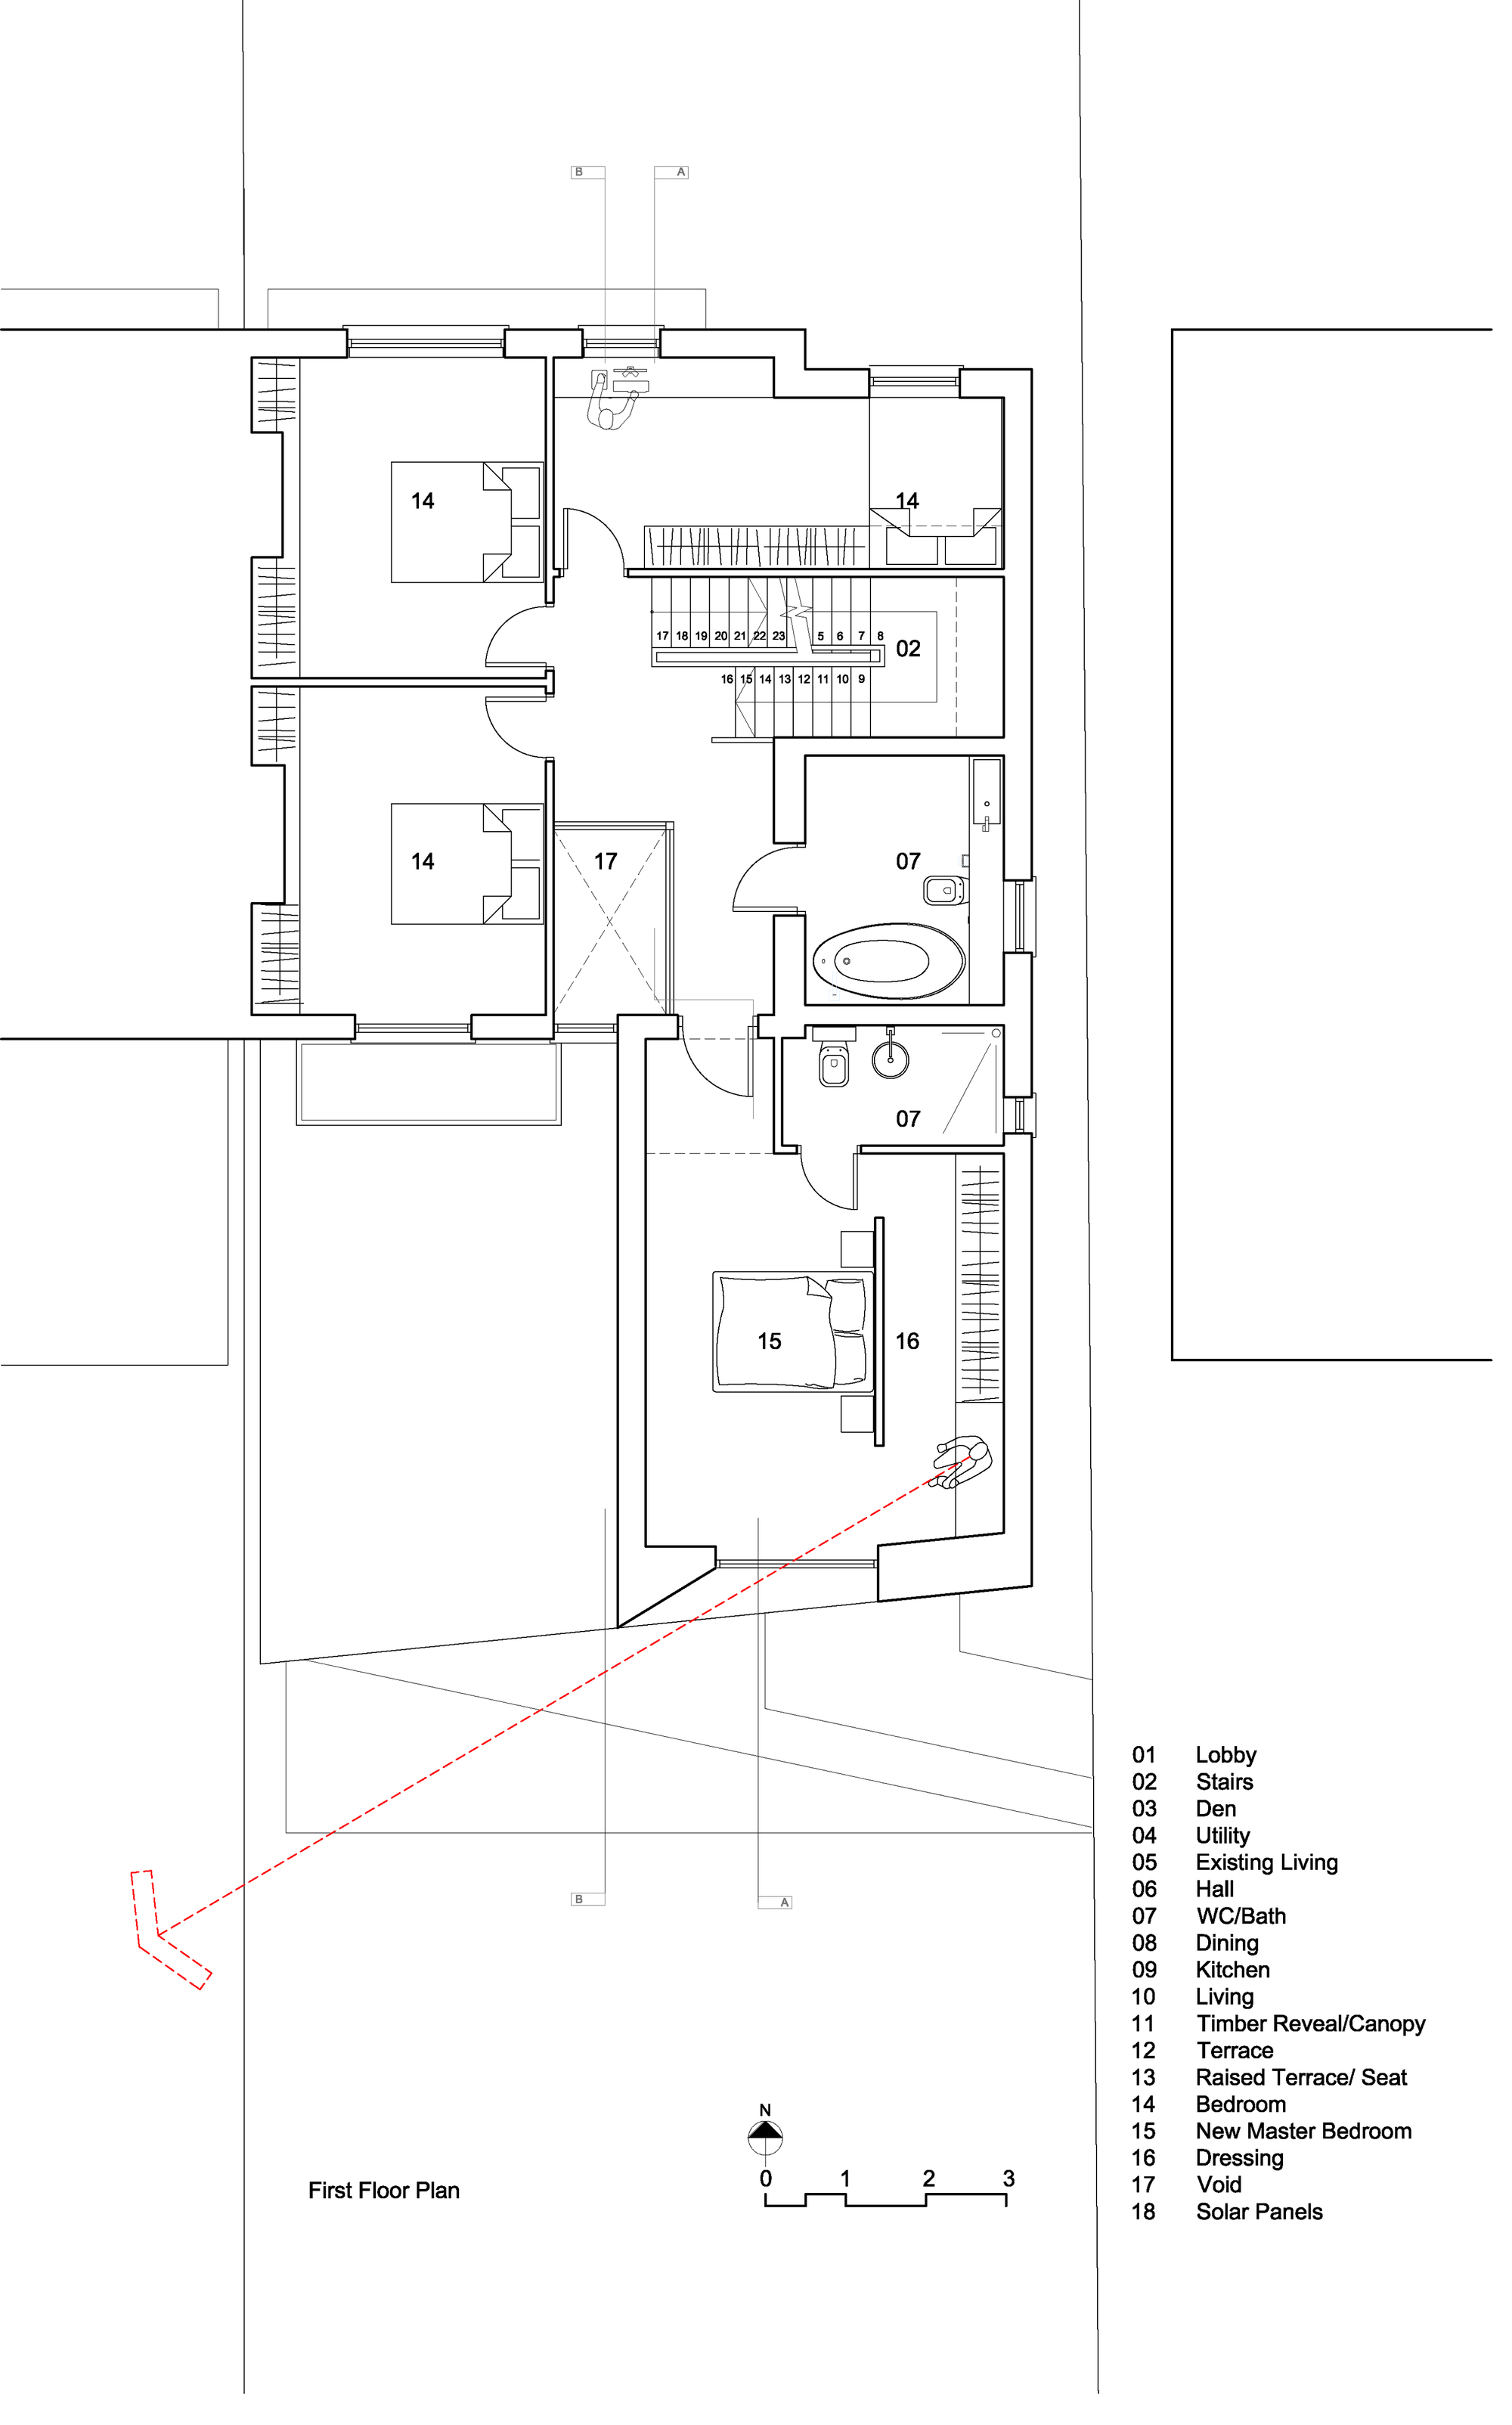 188798575 in addition Nantahala Floor Plan together with Malefemale Toilet 7 2m X 3m besides Ancient Roman Houses likewise Floor Plans For Contemporary Homes. on legend homes